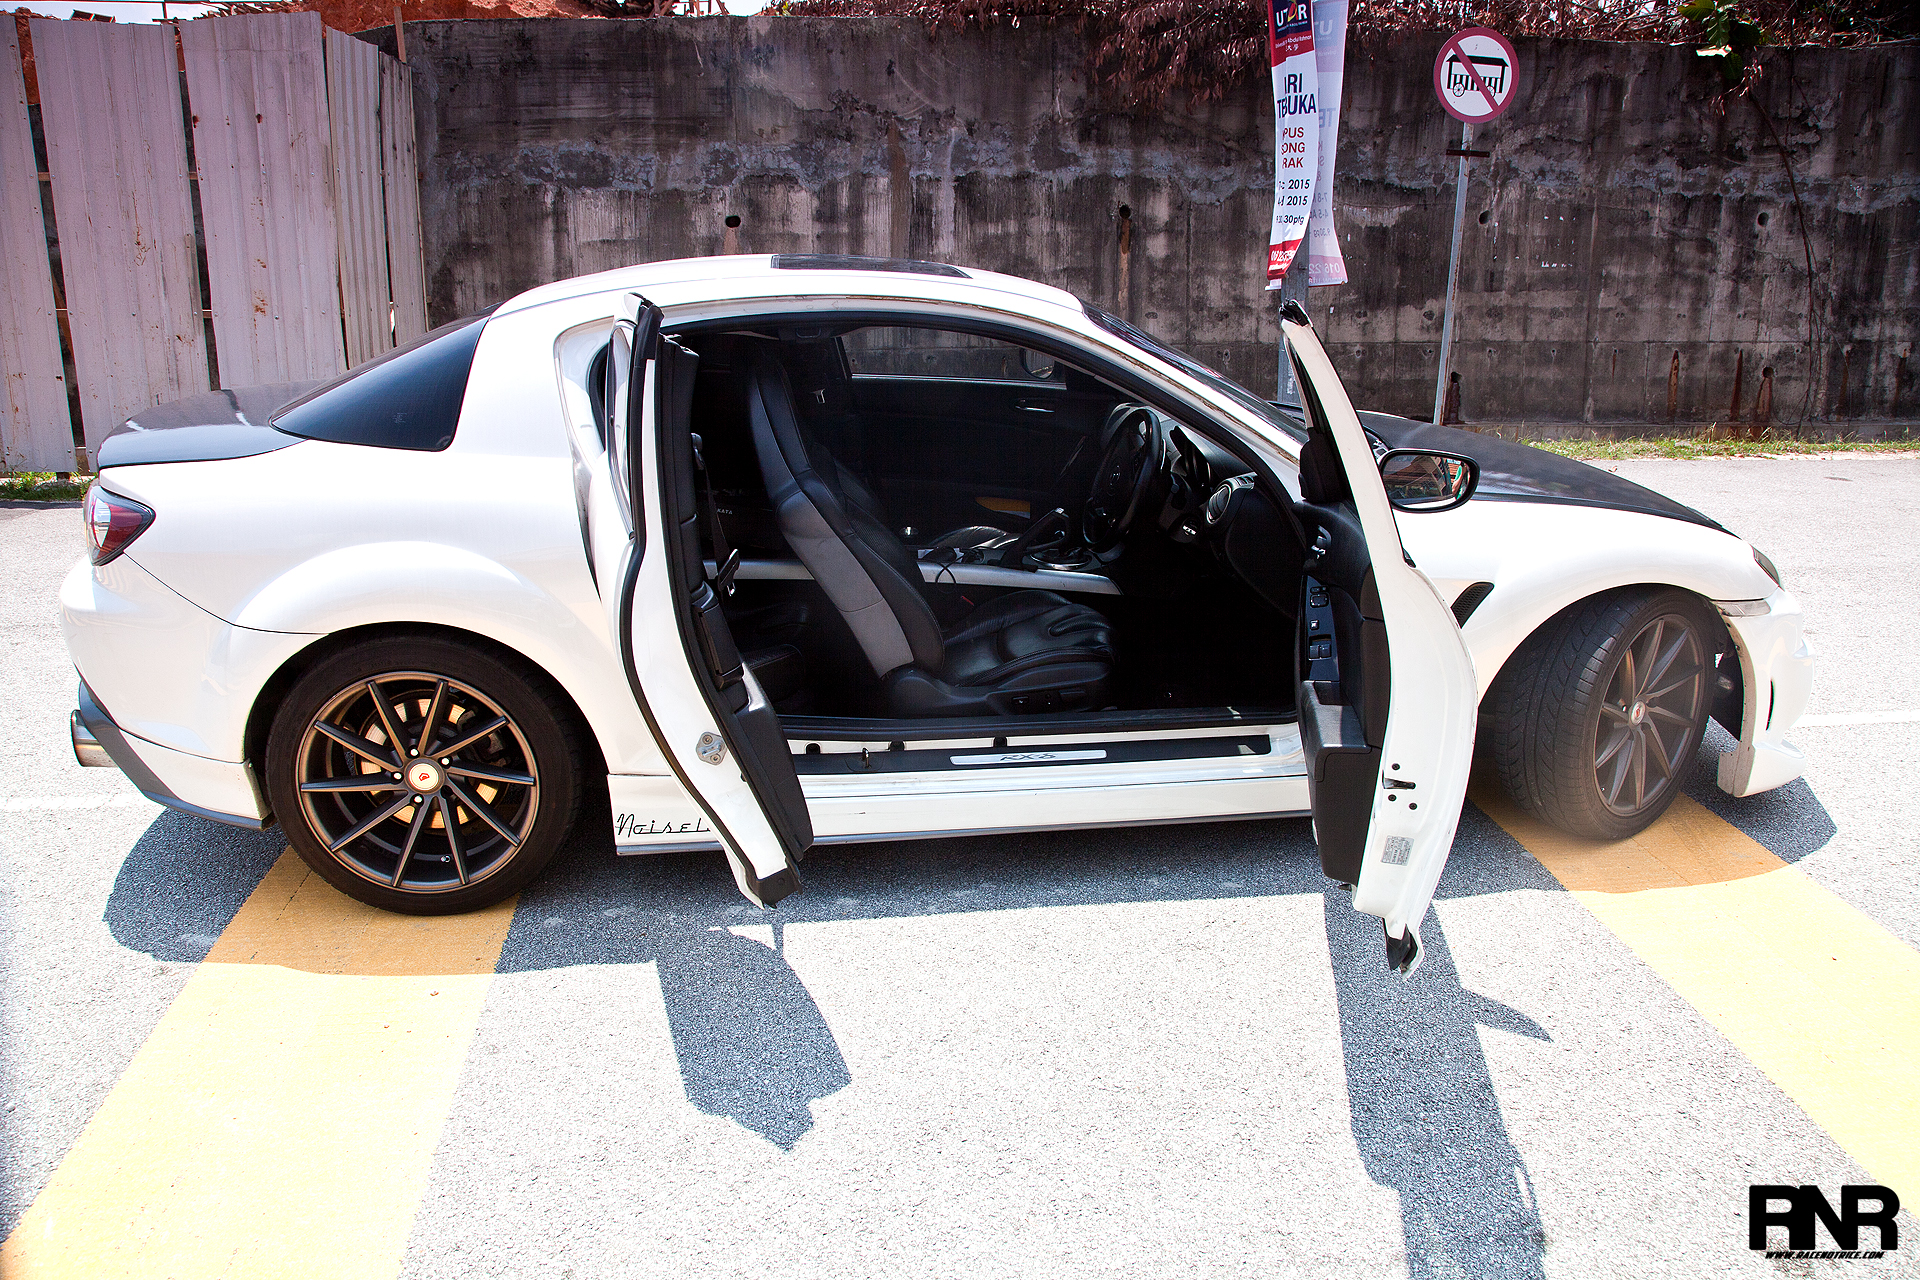 Looks like an RX8 rides like an RX8 feels like an RX8 but isnu0027t an RX8? Gotta love those doors. Who doesnu0027t love suicide doors? Plenty of space at the ... & RaceNotRice - Function+Form